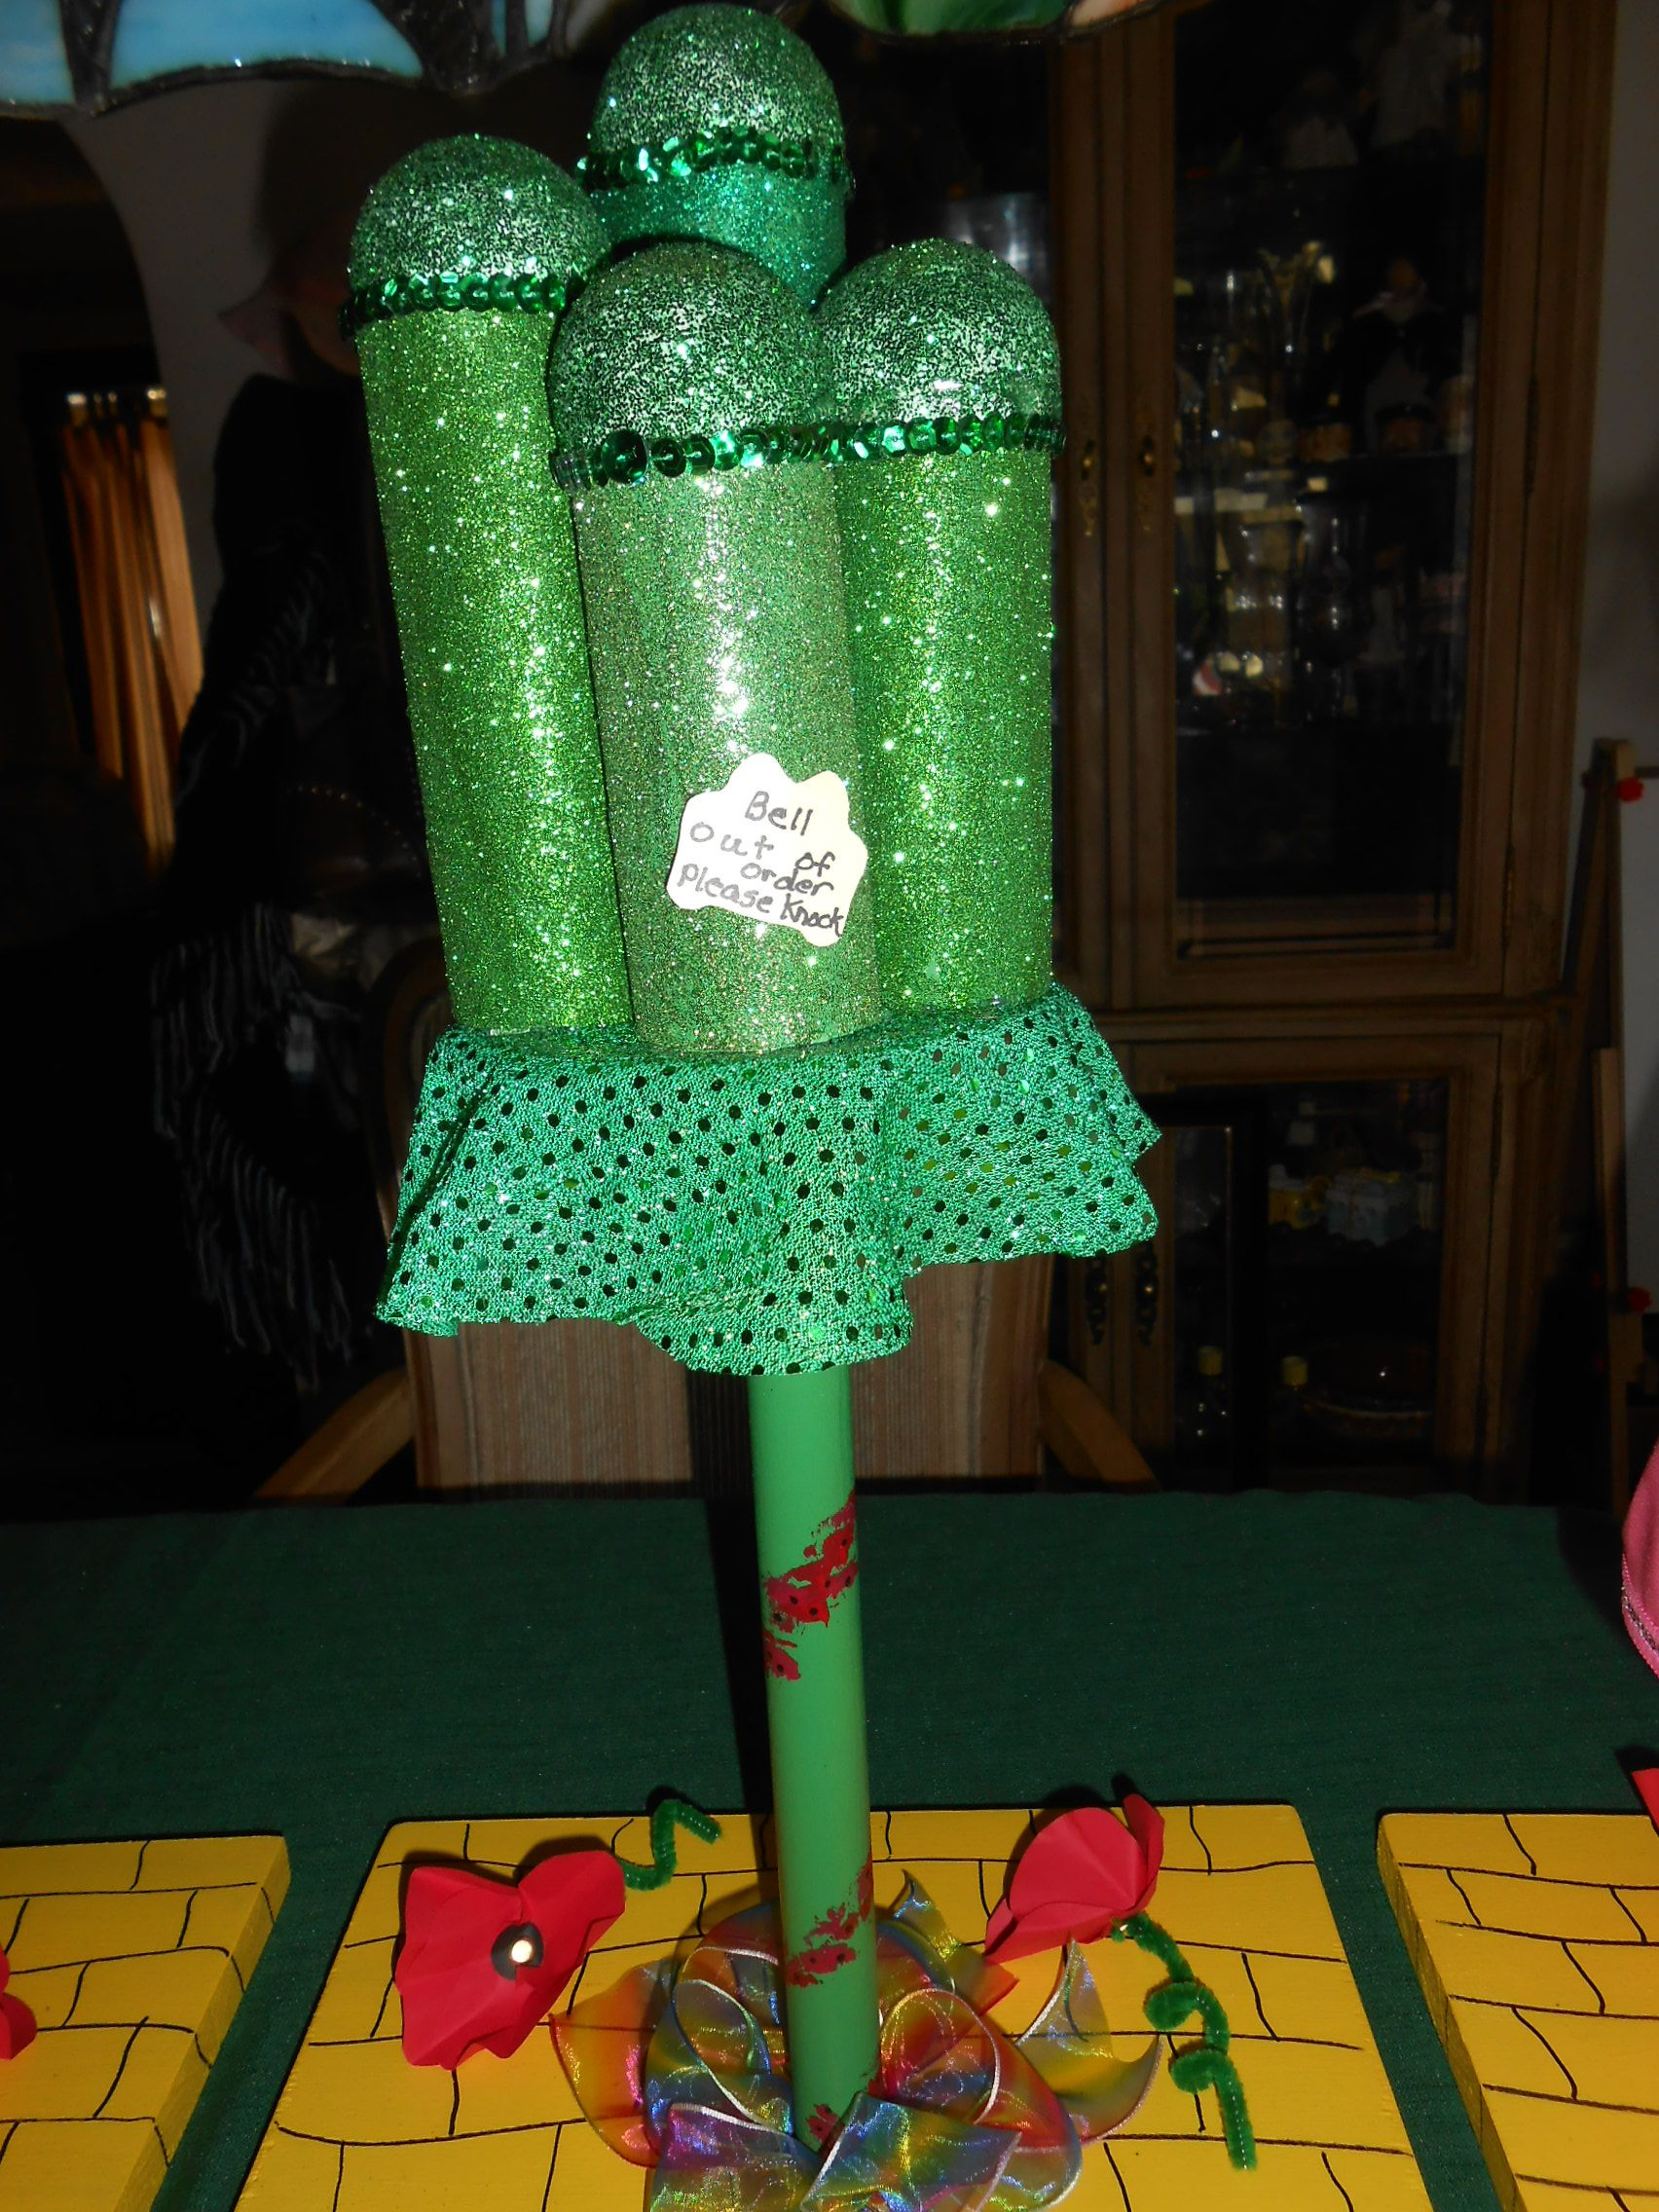 Emerald City Bell out of order, please knock Wizard of Oz - Wizard Of Oz Halloween Decorations